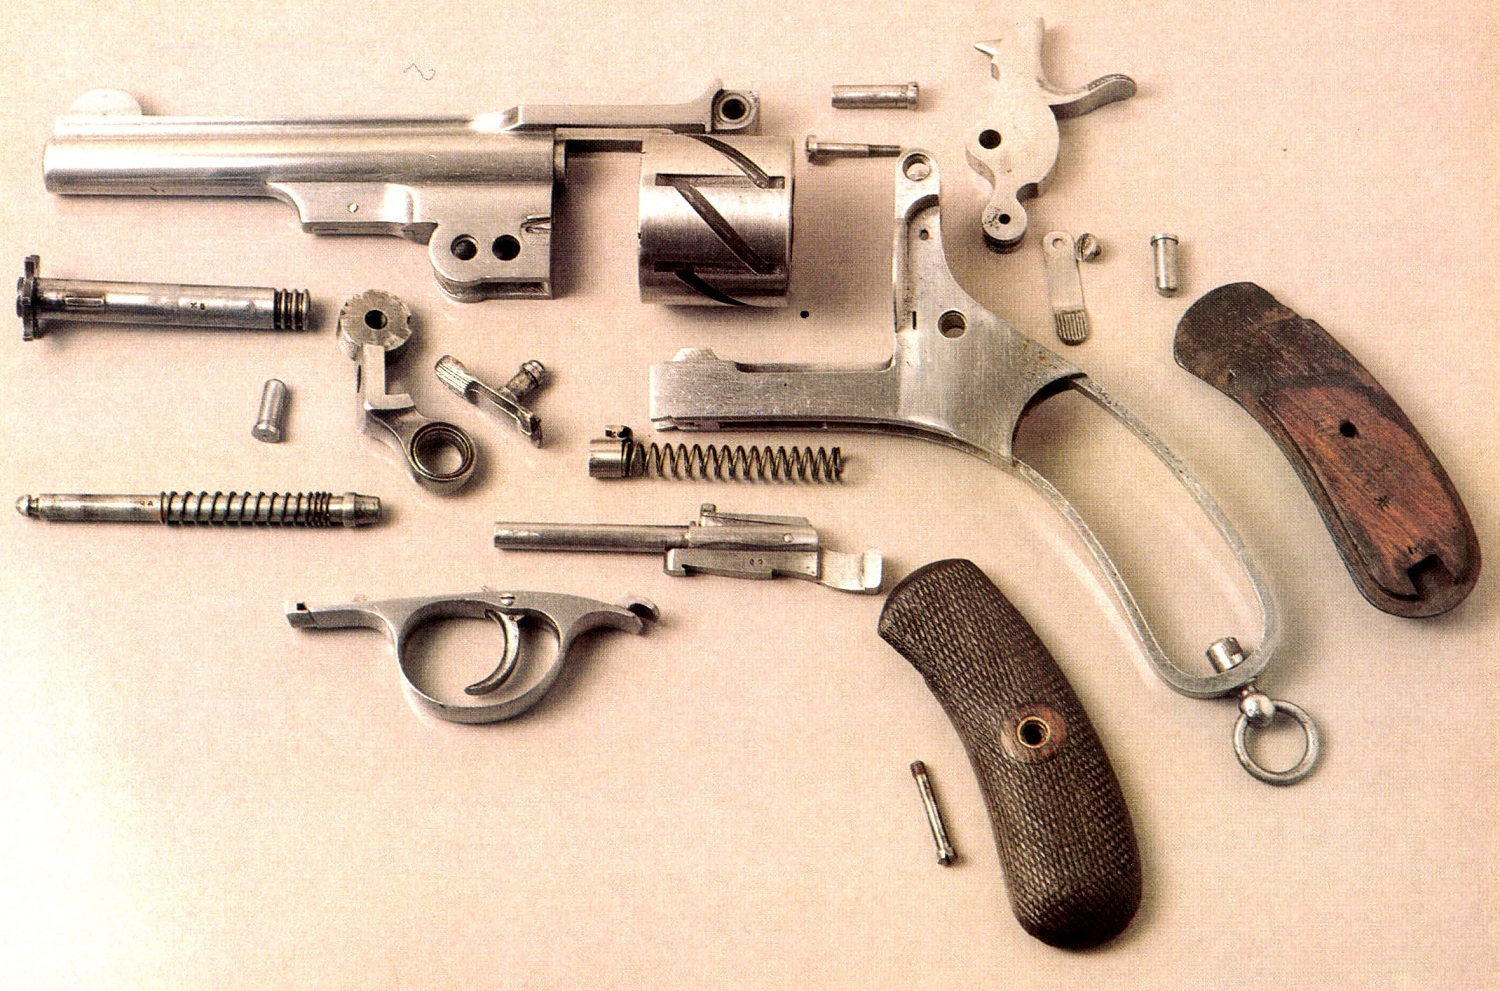 Disassembly of the Mauser Zig Zag 1878 model hinged-frame